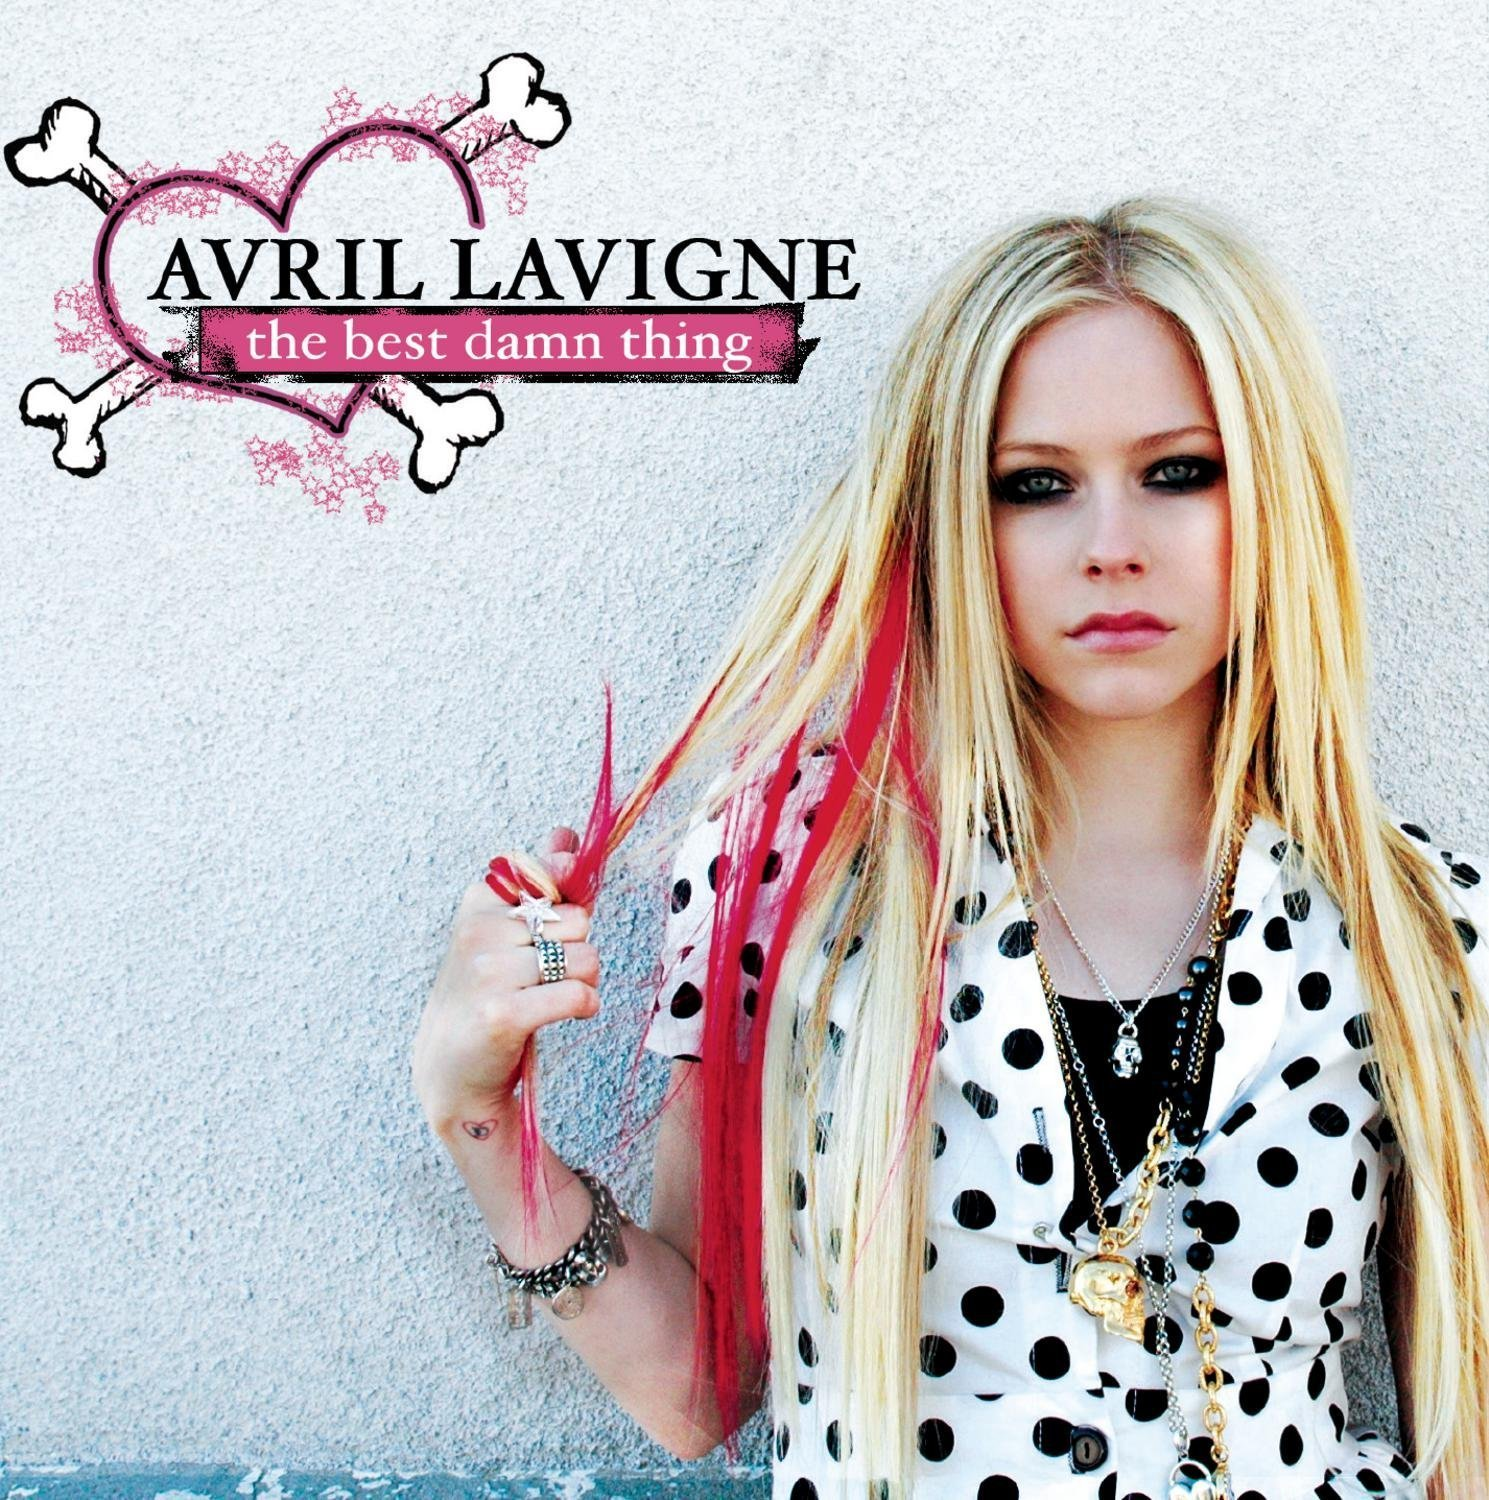 Best Damn Thing by Avril Lavigne image